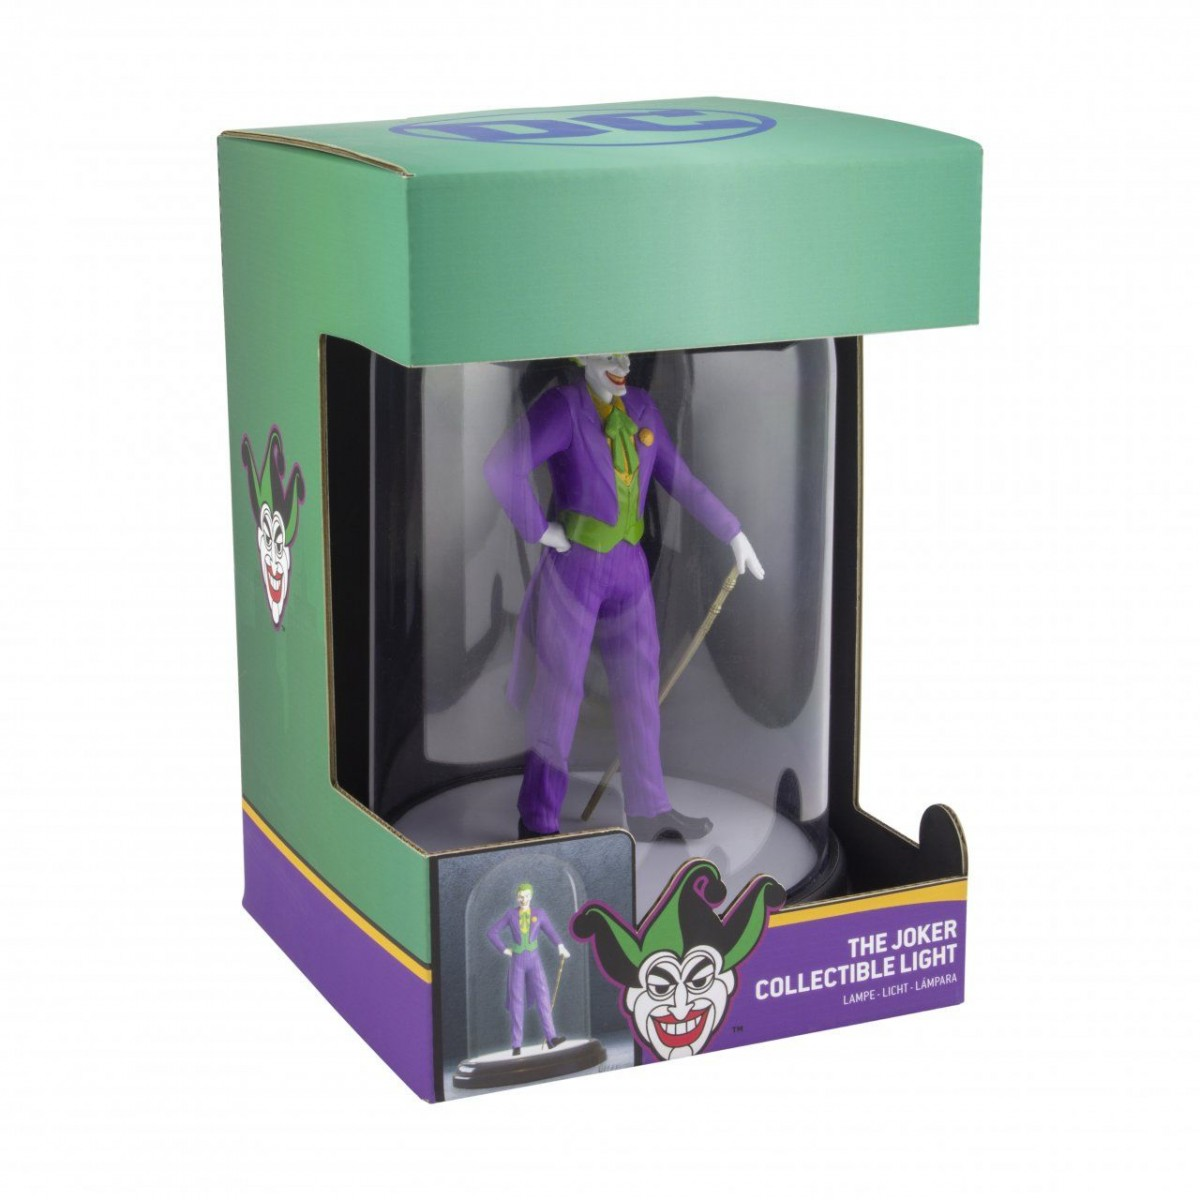 Светильник Paladone: ДиСи (DC) Джокер (The Joker) (PP5245DC) 20 см